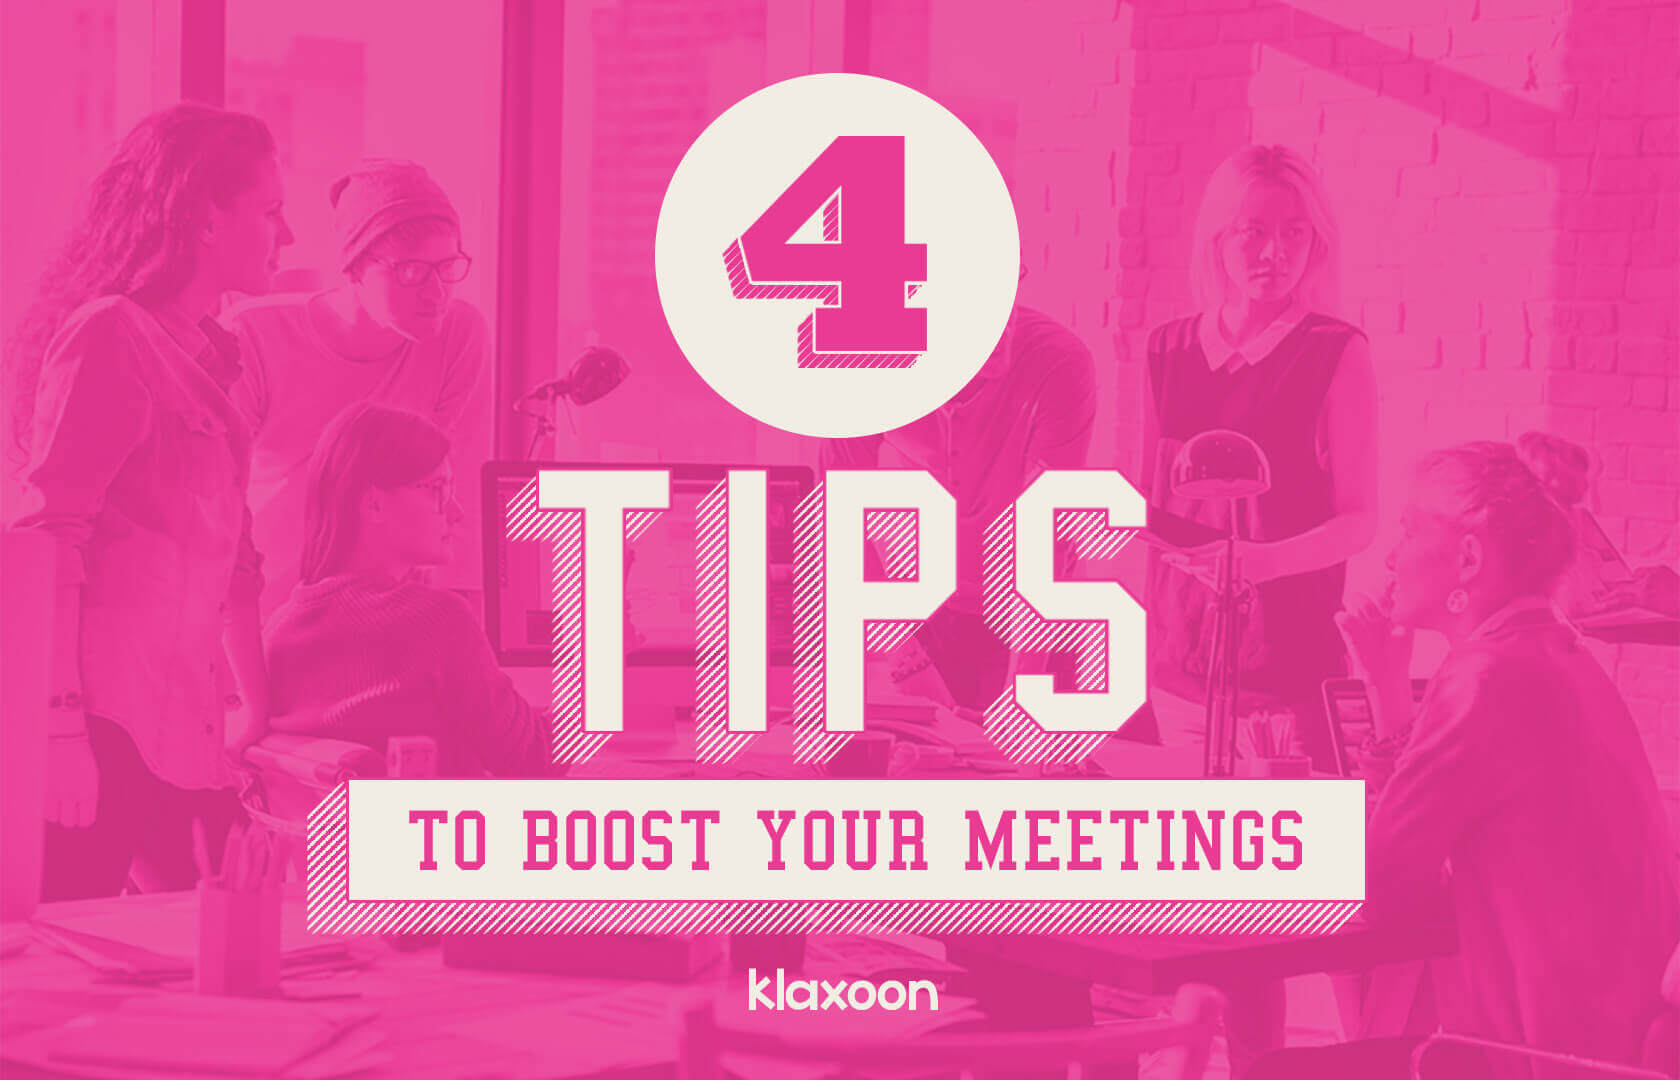 4 tips to boost your meetings